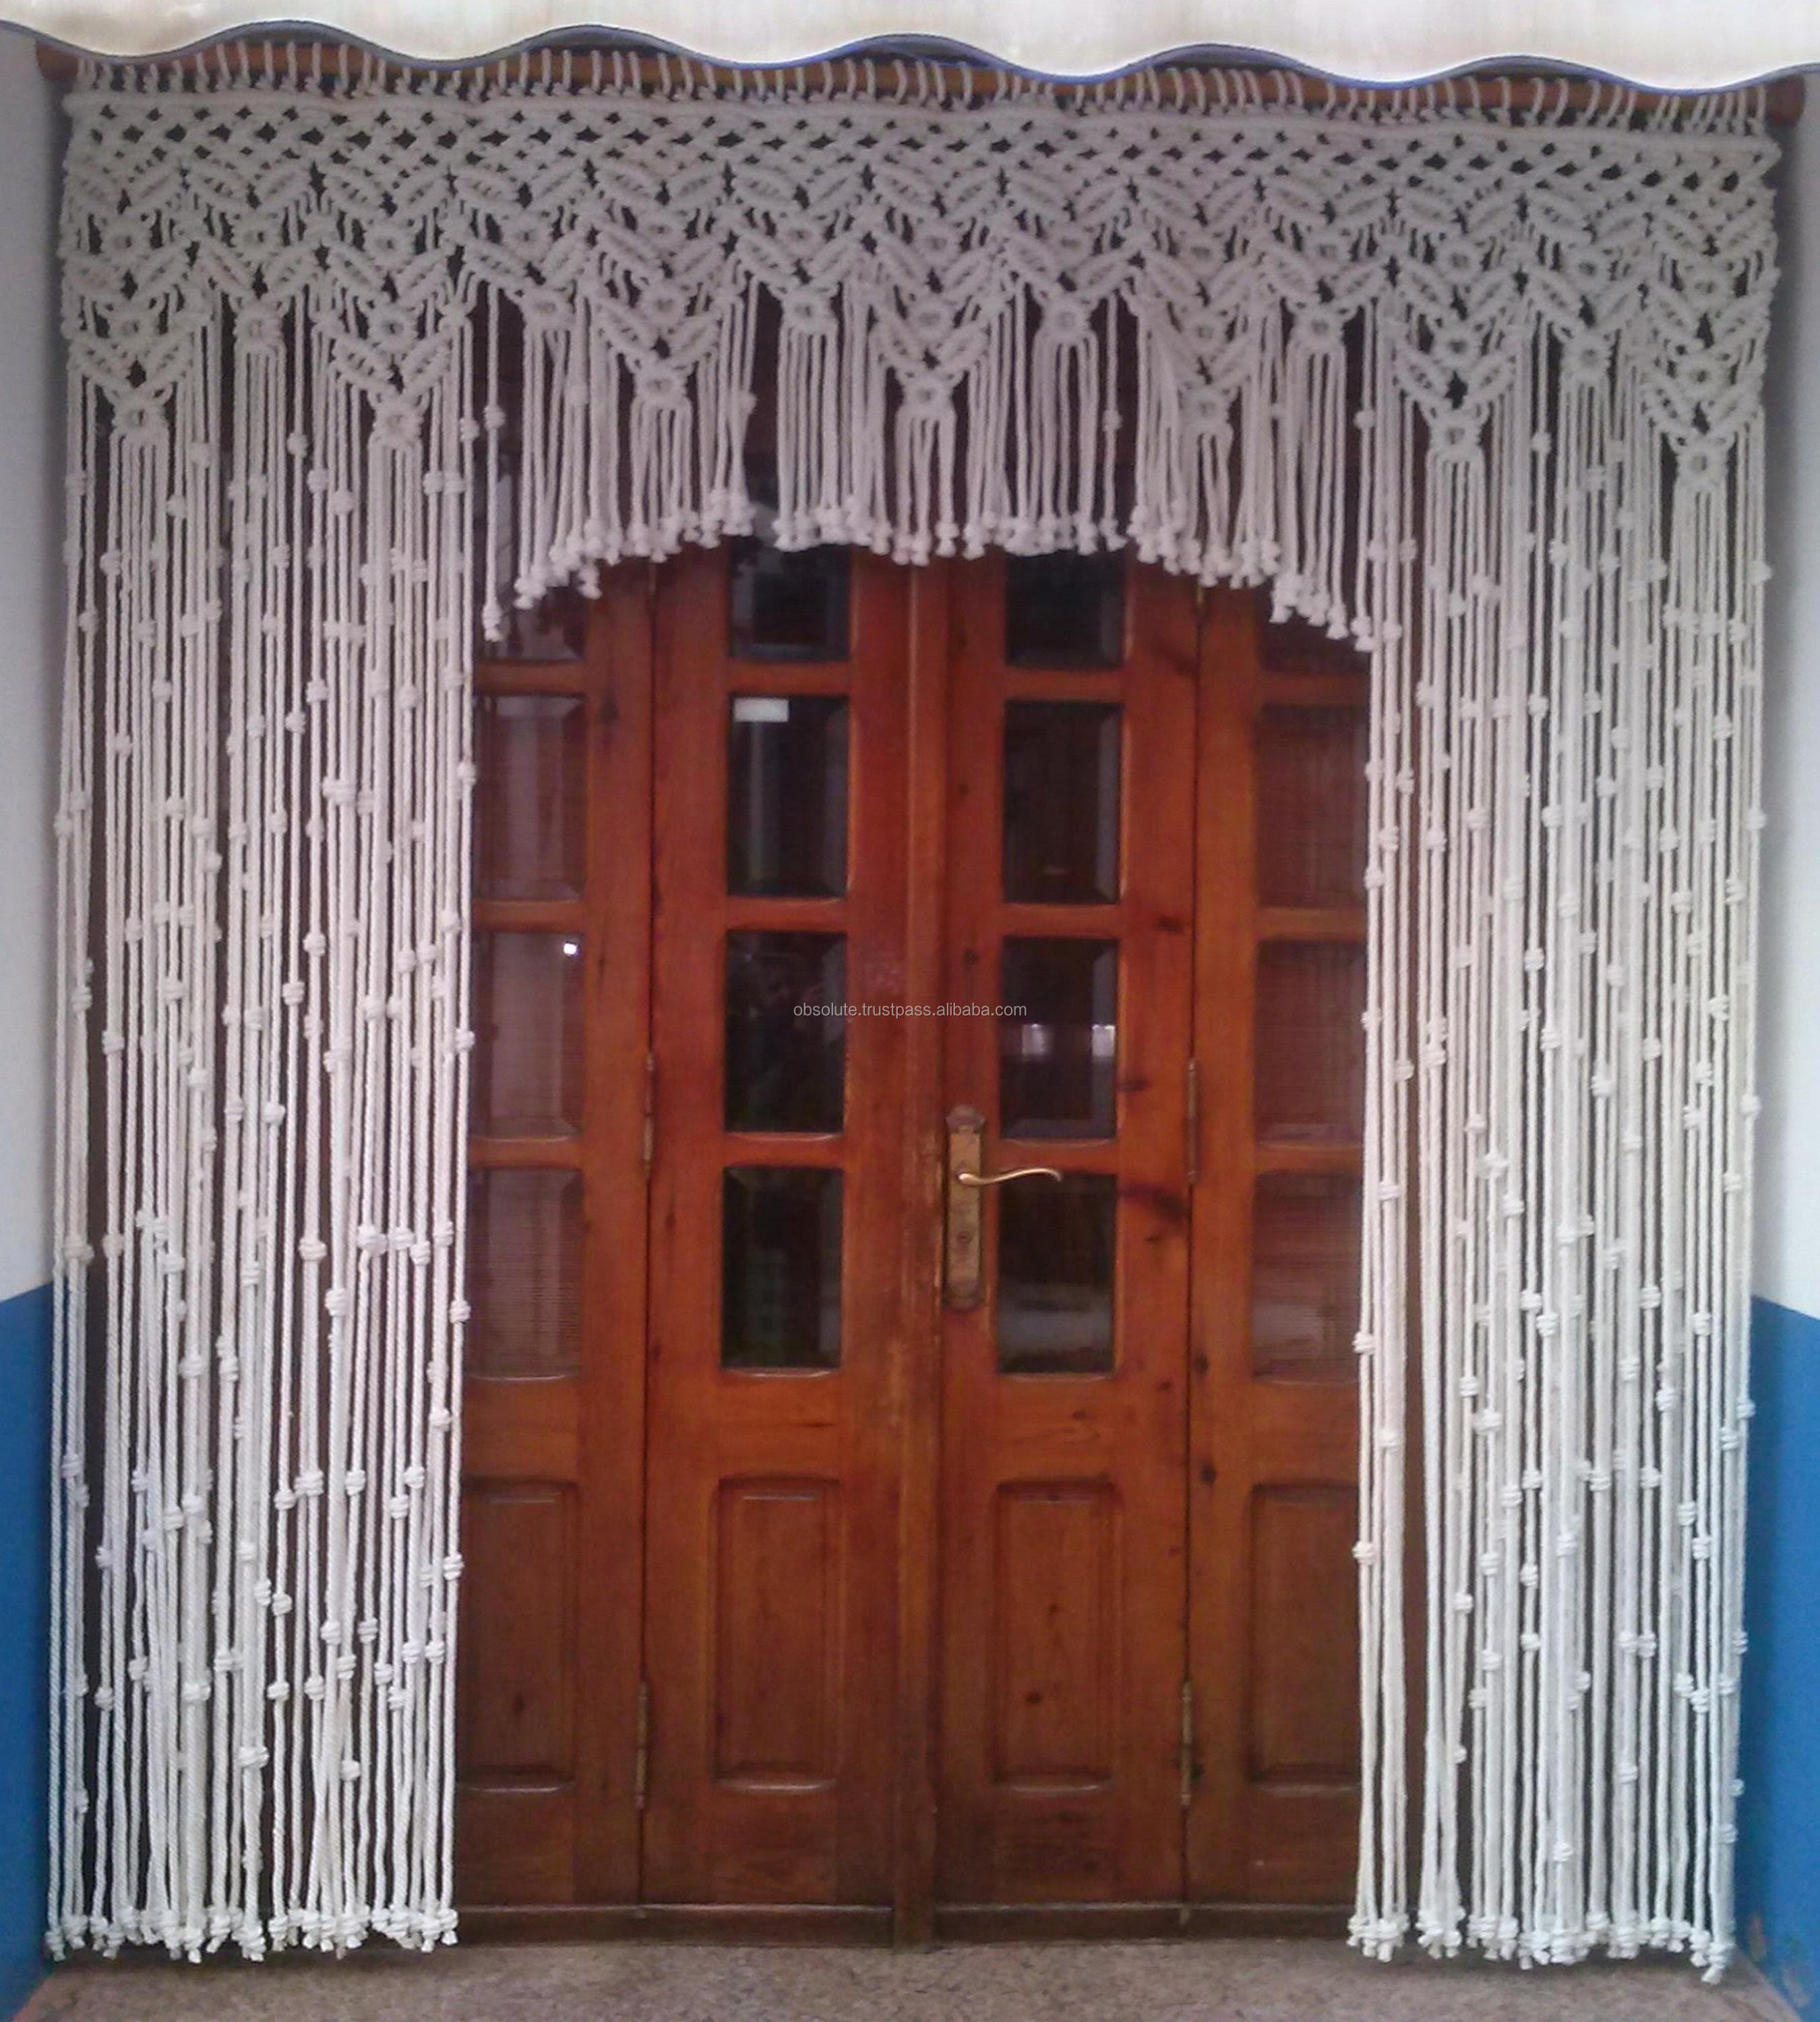 Macrame Curtains Room Divider Boho Curtain Buy Macrame Door Curtains Macrame Curtain Hanging Door Curtain Product On Alibaba Com